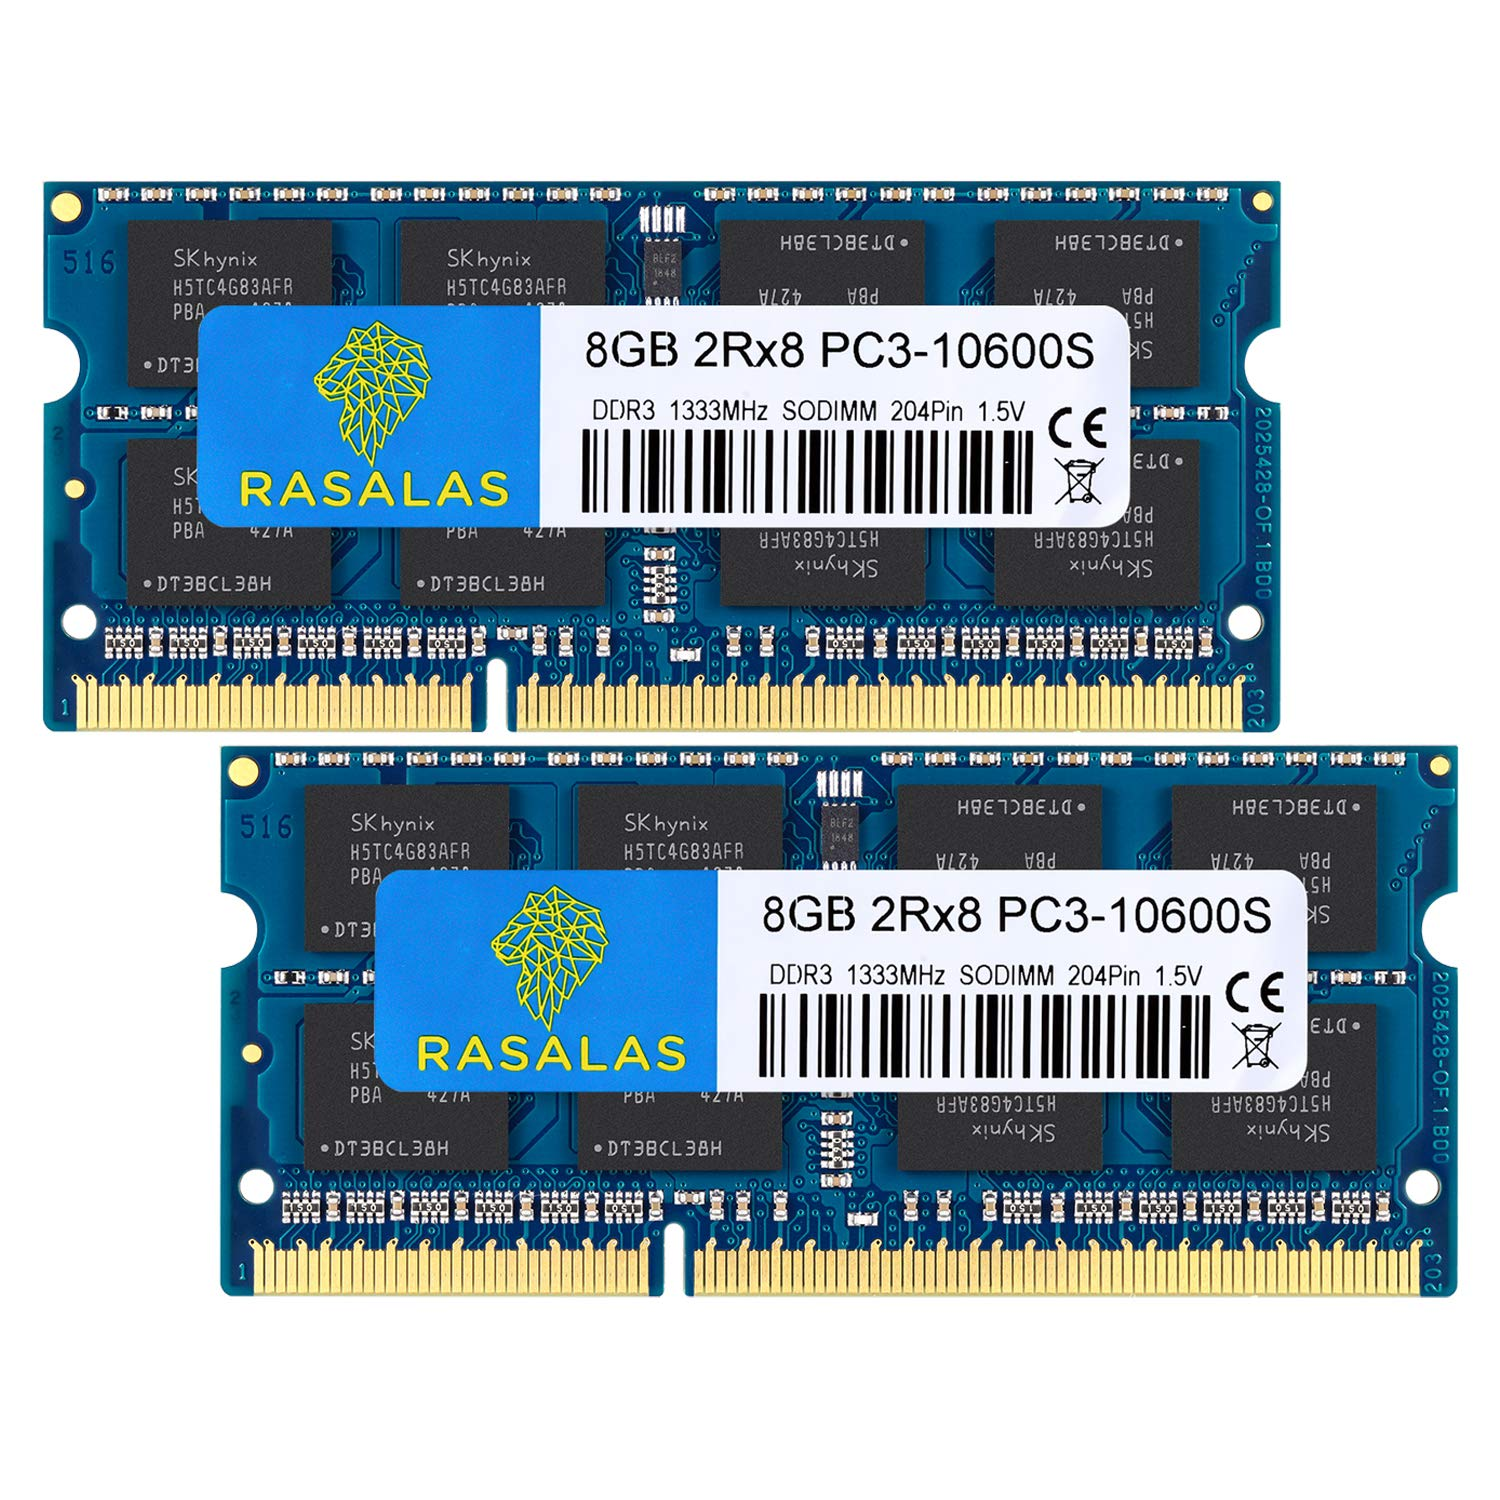 Memoria Ram 16gb Rasalas Ddr3 Kit (2x8gb) Pc3 10600s Ddr3 1333 Mhz 1.5v Cl9 Ddr3 2rx8 Pc3 8gb Ddr3 204 Pin Ddr3 S